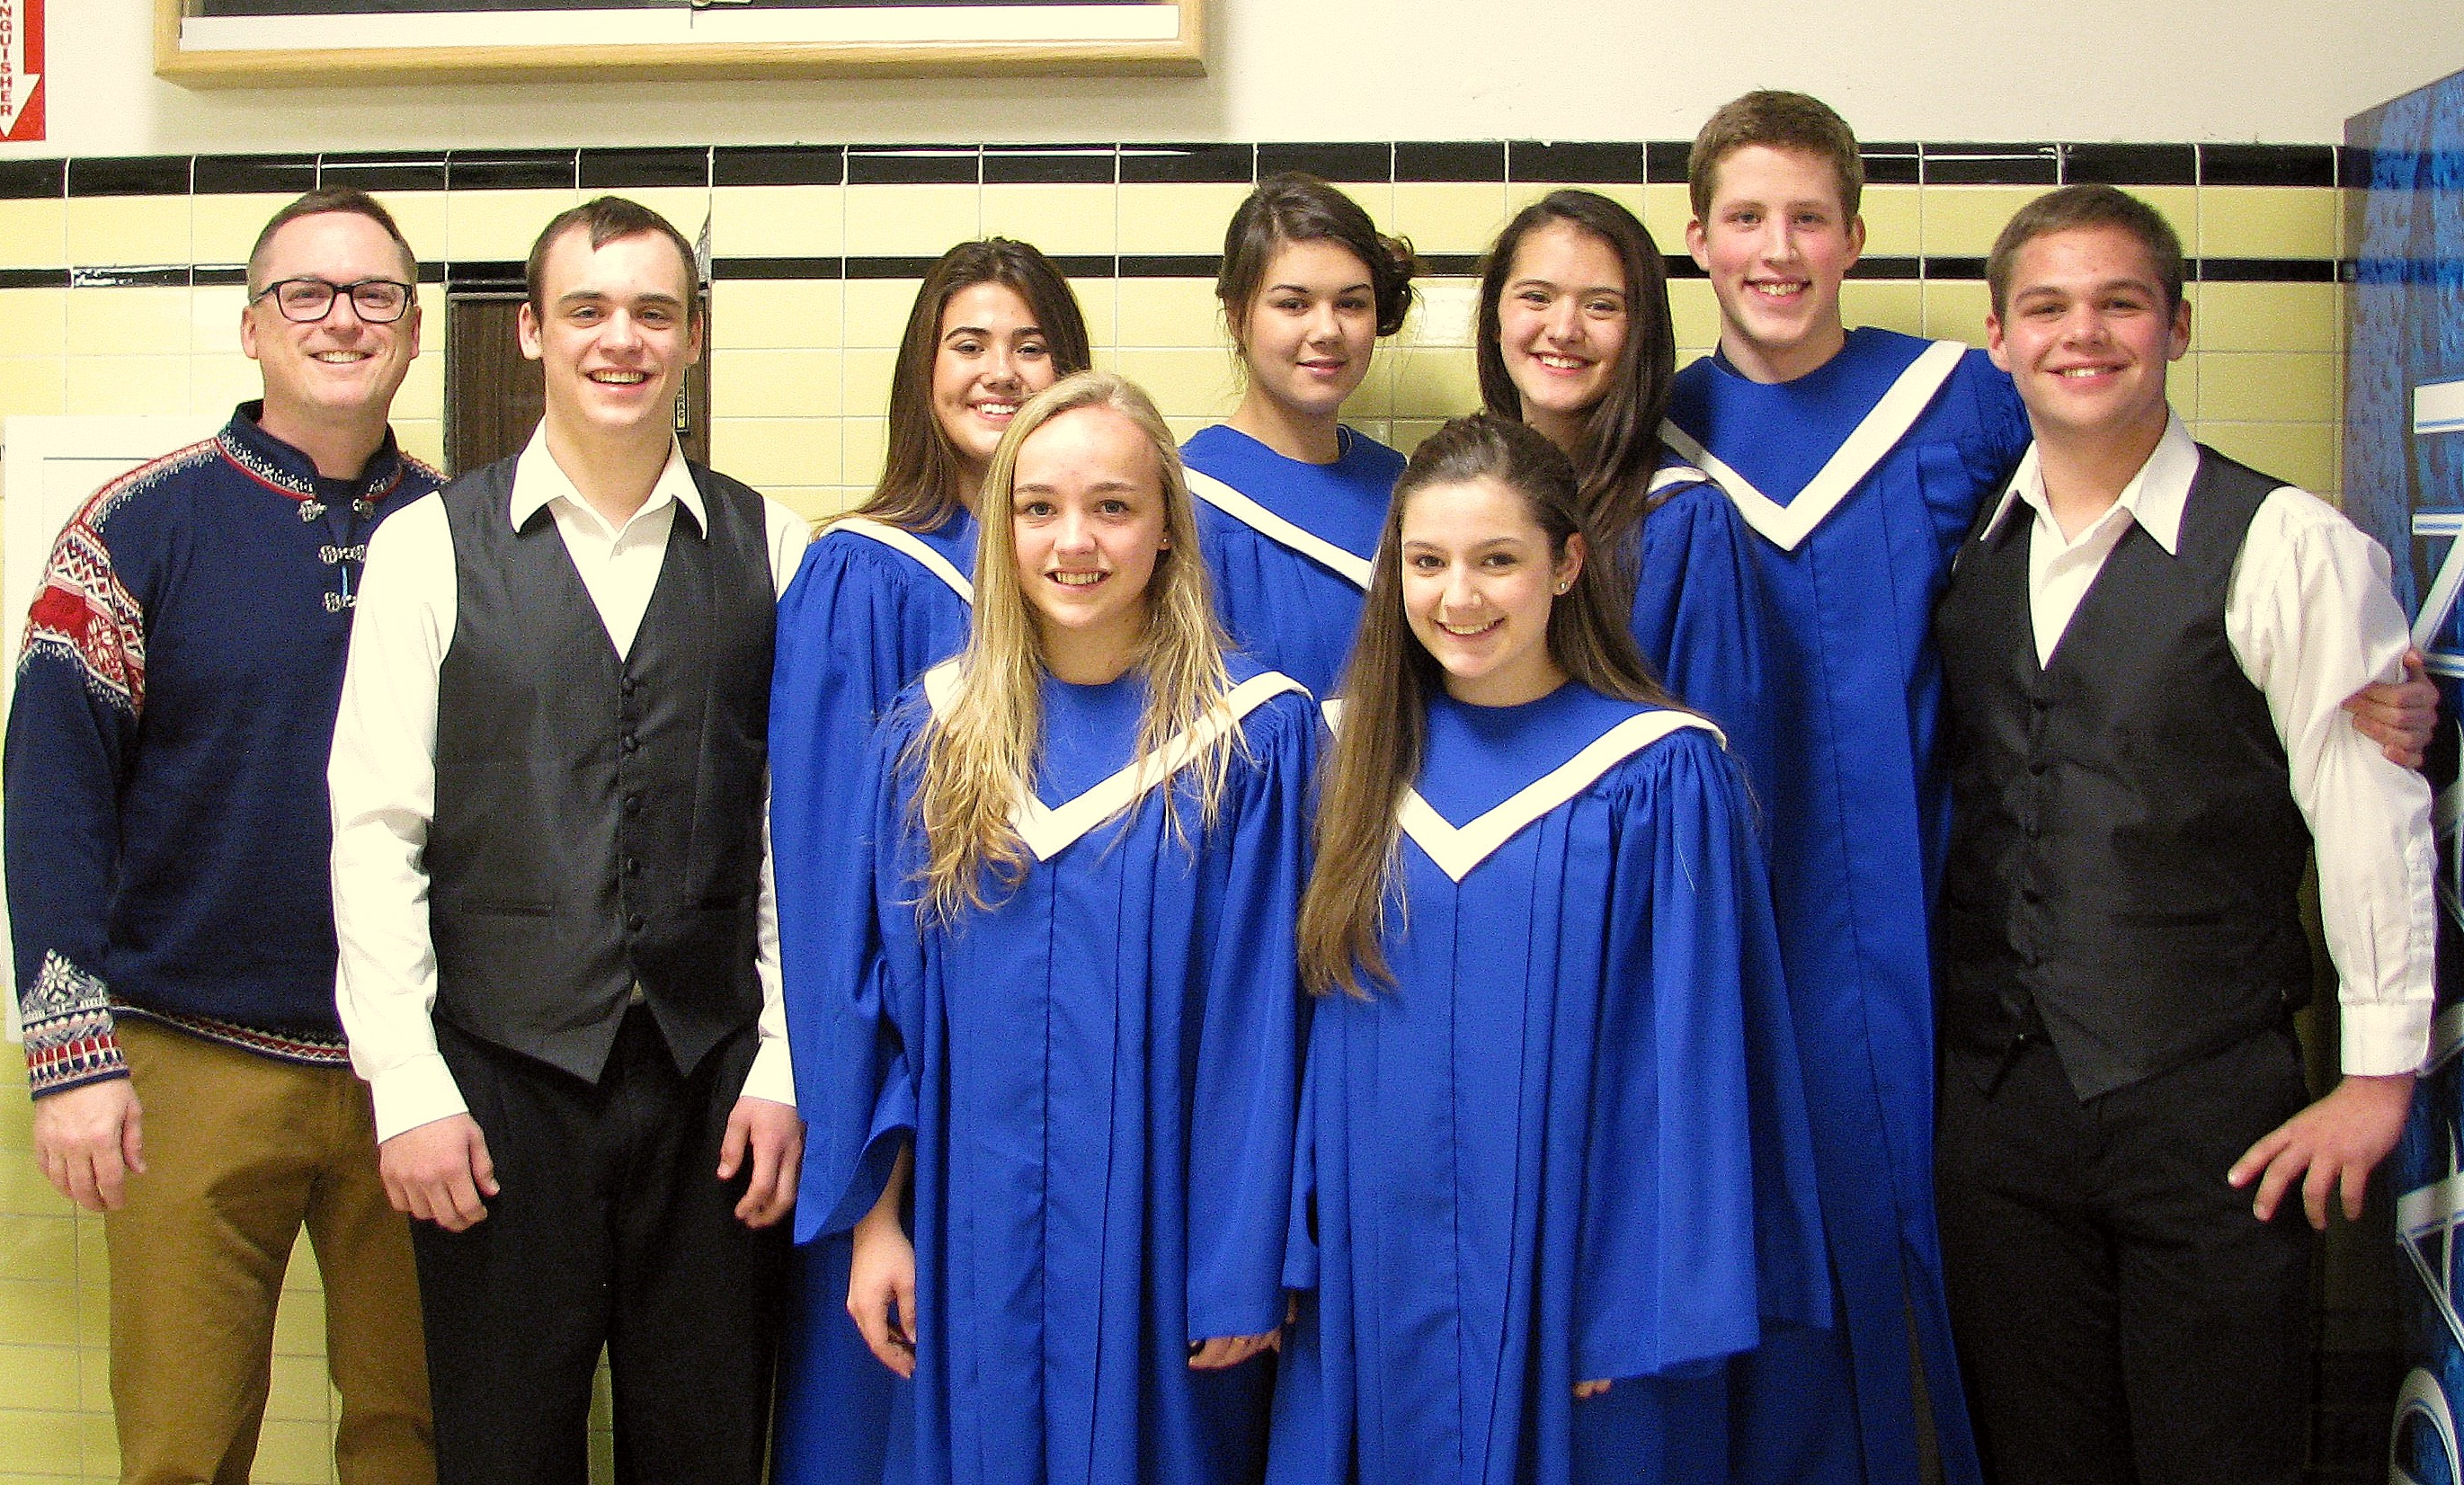 Music teacher Matt Lenhard poses with the eight students who went to the All-State Music Festival: (L-R) Matt Lenhard, Senior Nathaniel Lenhard, Junior Jasmine Ieremia, Sophomore Eva Lenhard, Senior Kelsa Sperl, Freshman Brooklyn Dormer, Junior Julia Murph, Senior Ben Higgins, Junior Brandon Ware. Photo courtesy of Matt Lenhard